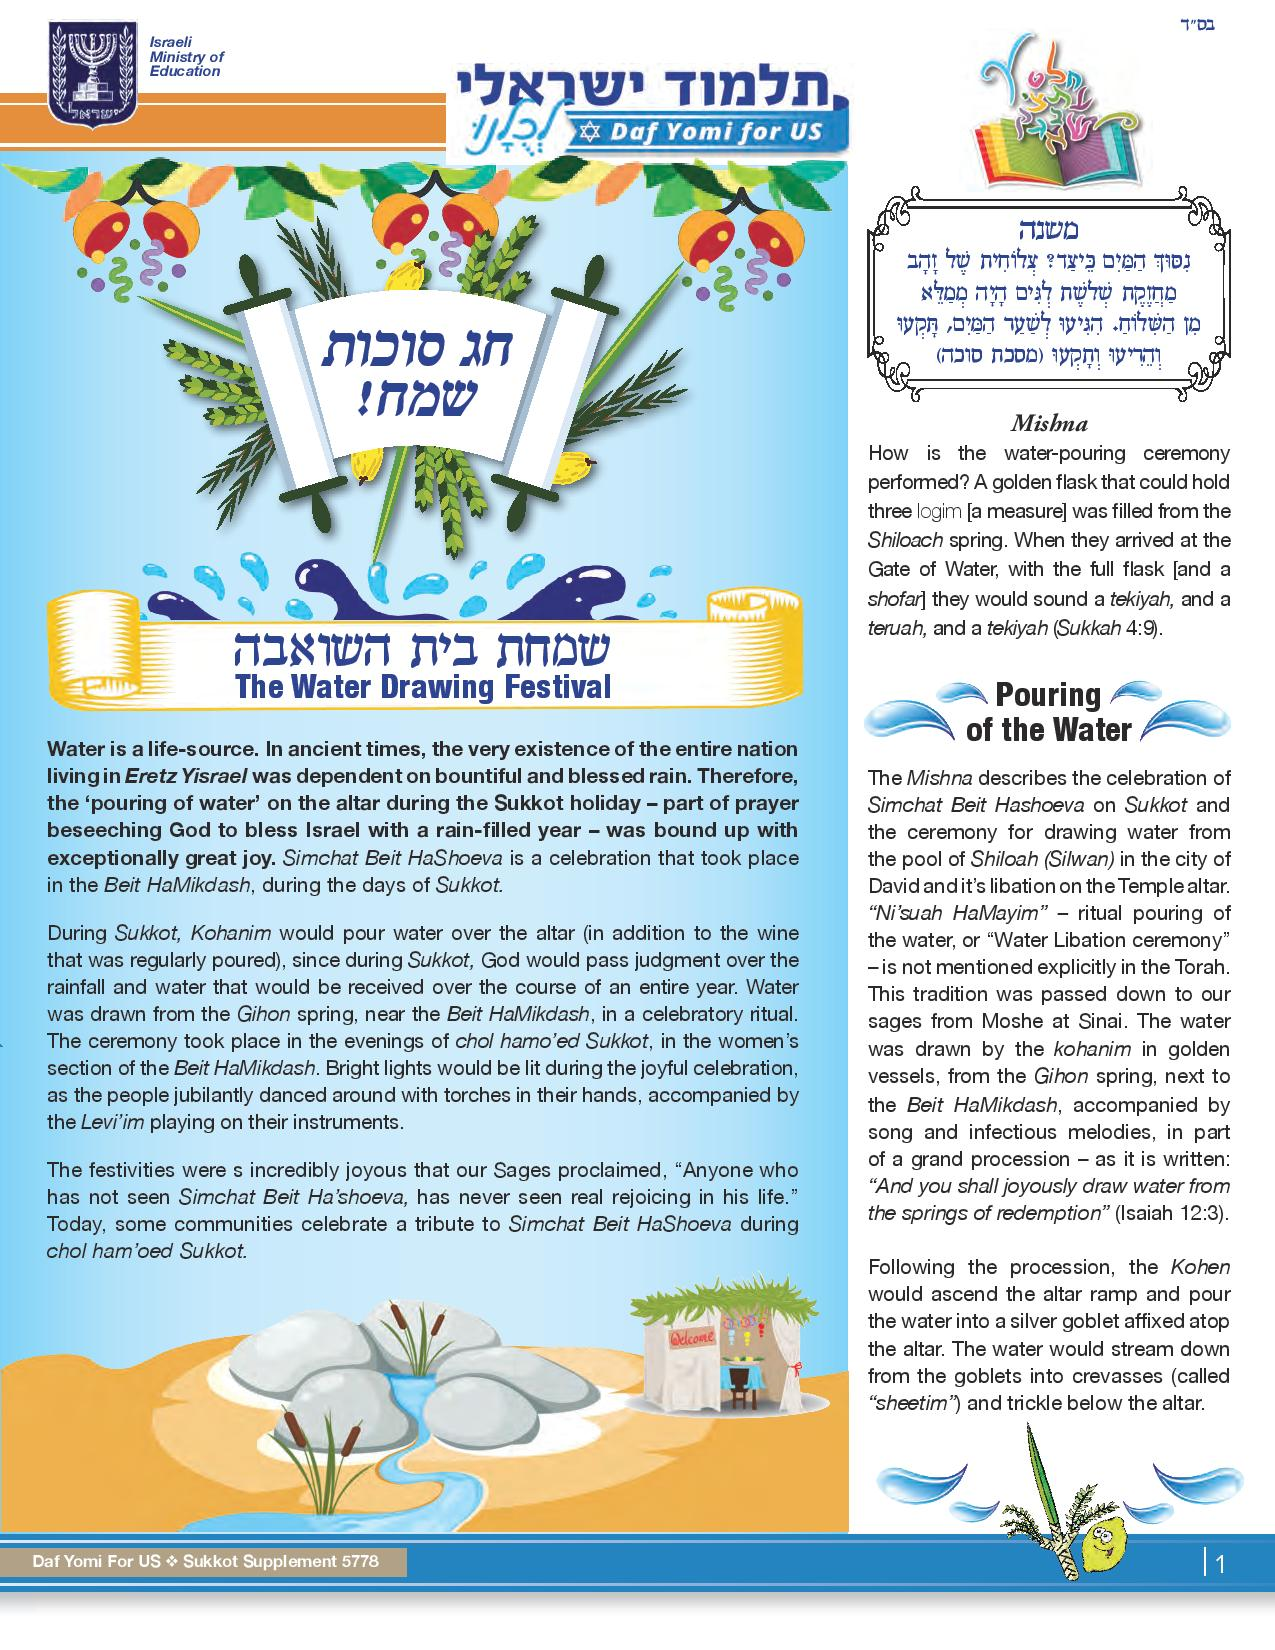 Talmud Yisraeli for Sukkot